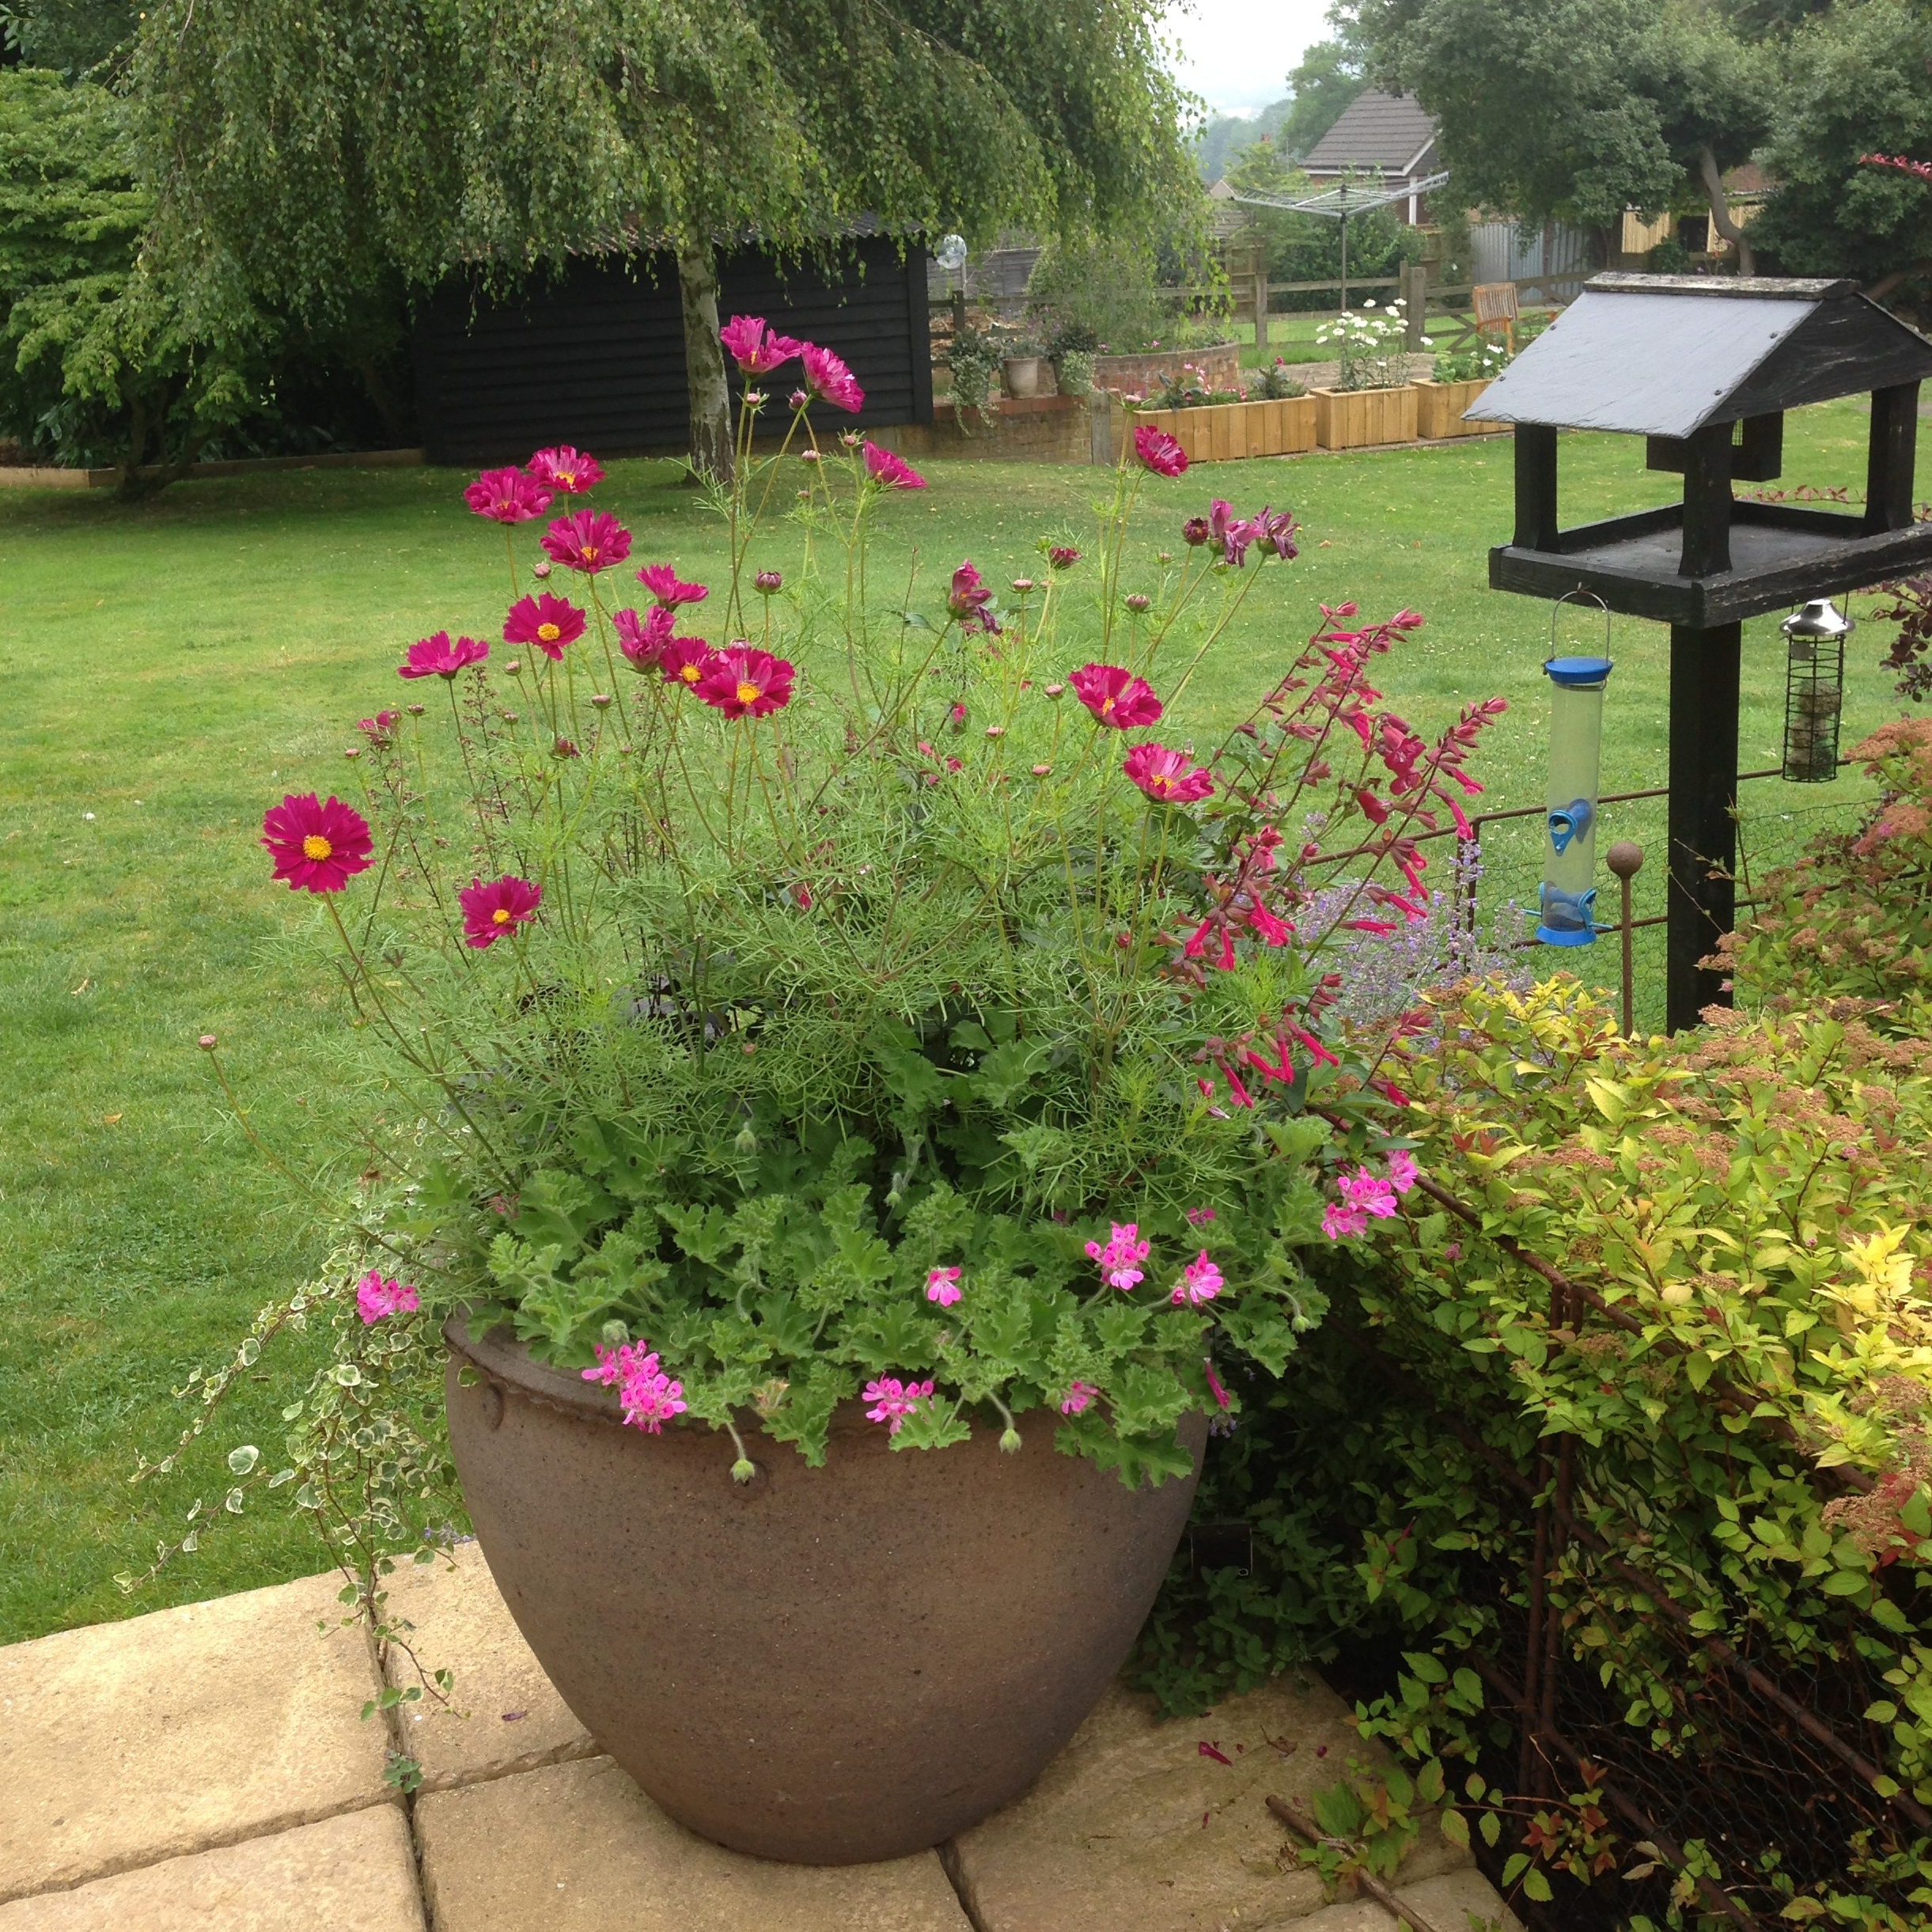 Flowers To Grow In Small Pots: Grow Your Own Flowers Small Garden Special